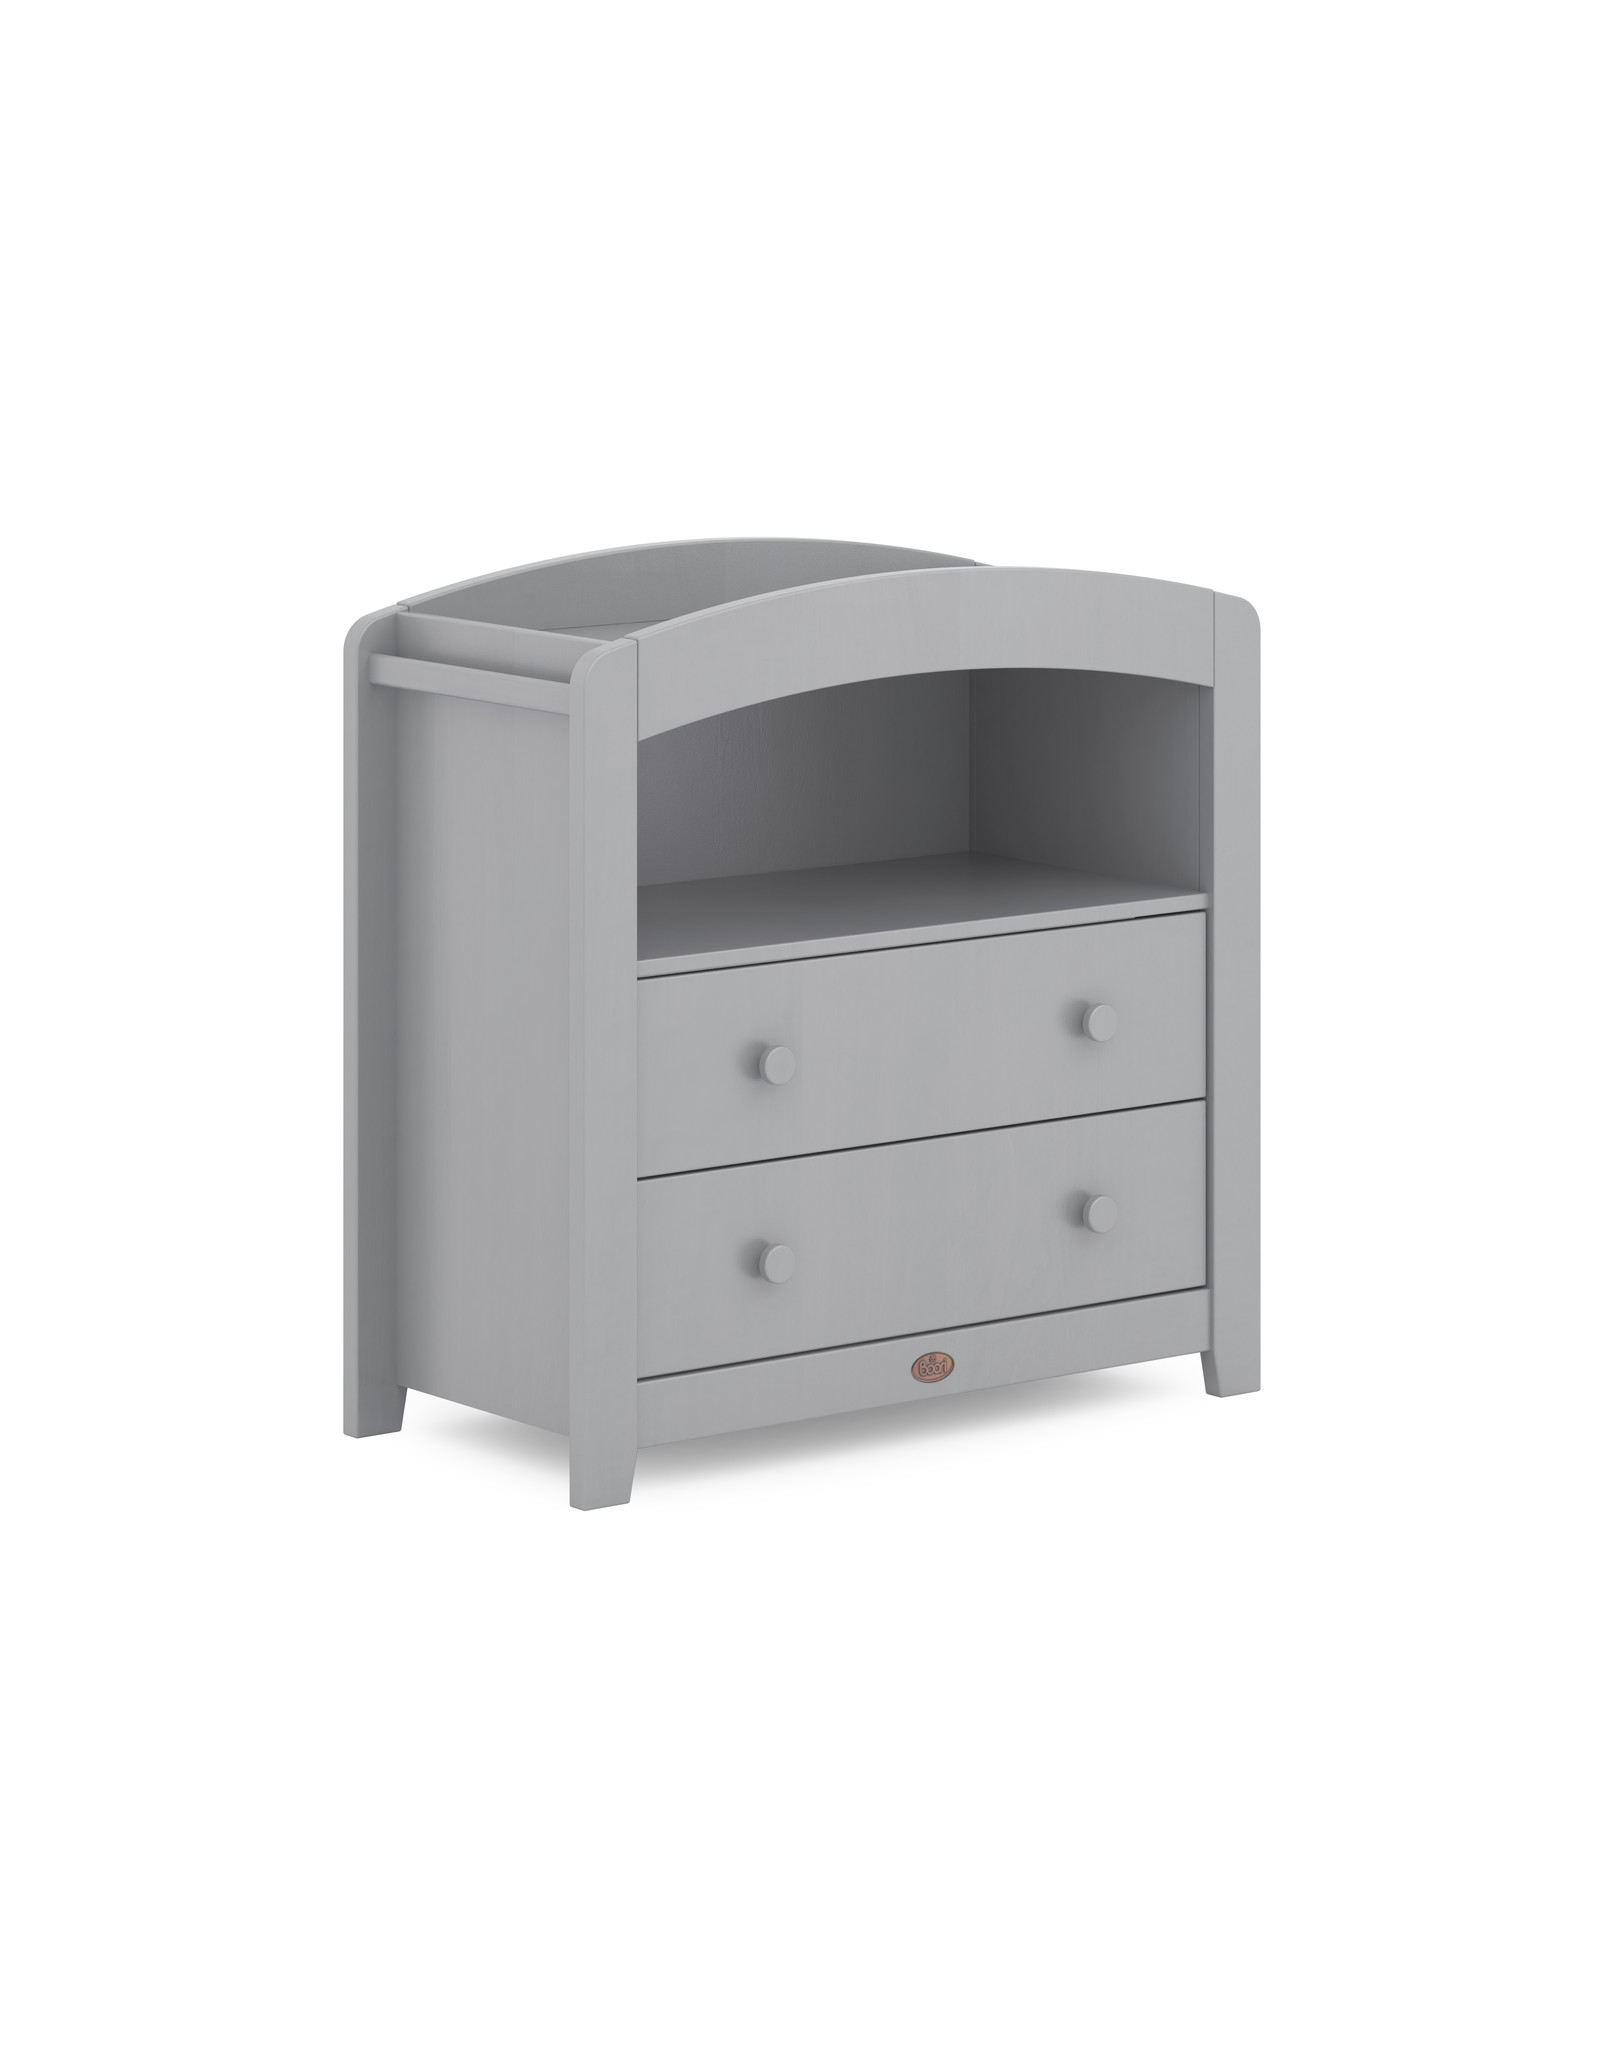 Boori Boori Curved Two Drawer Chest Changer - Pebble